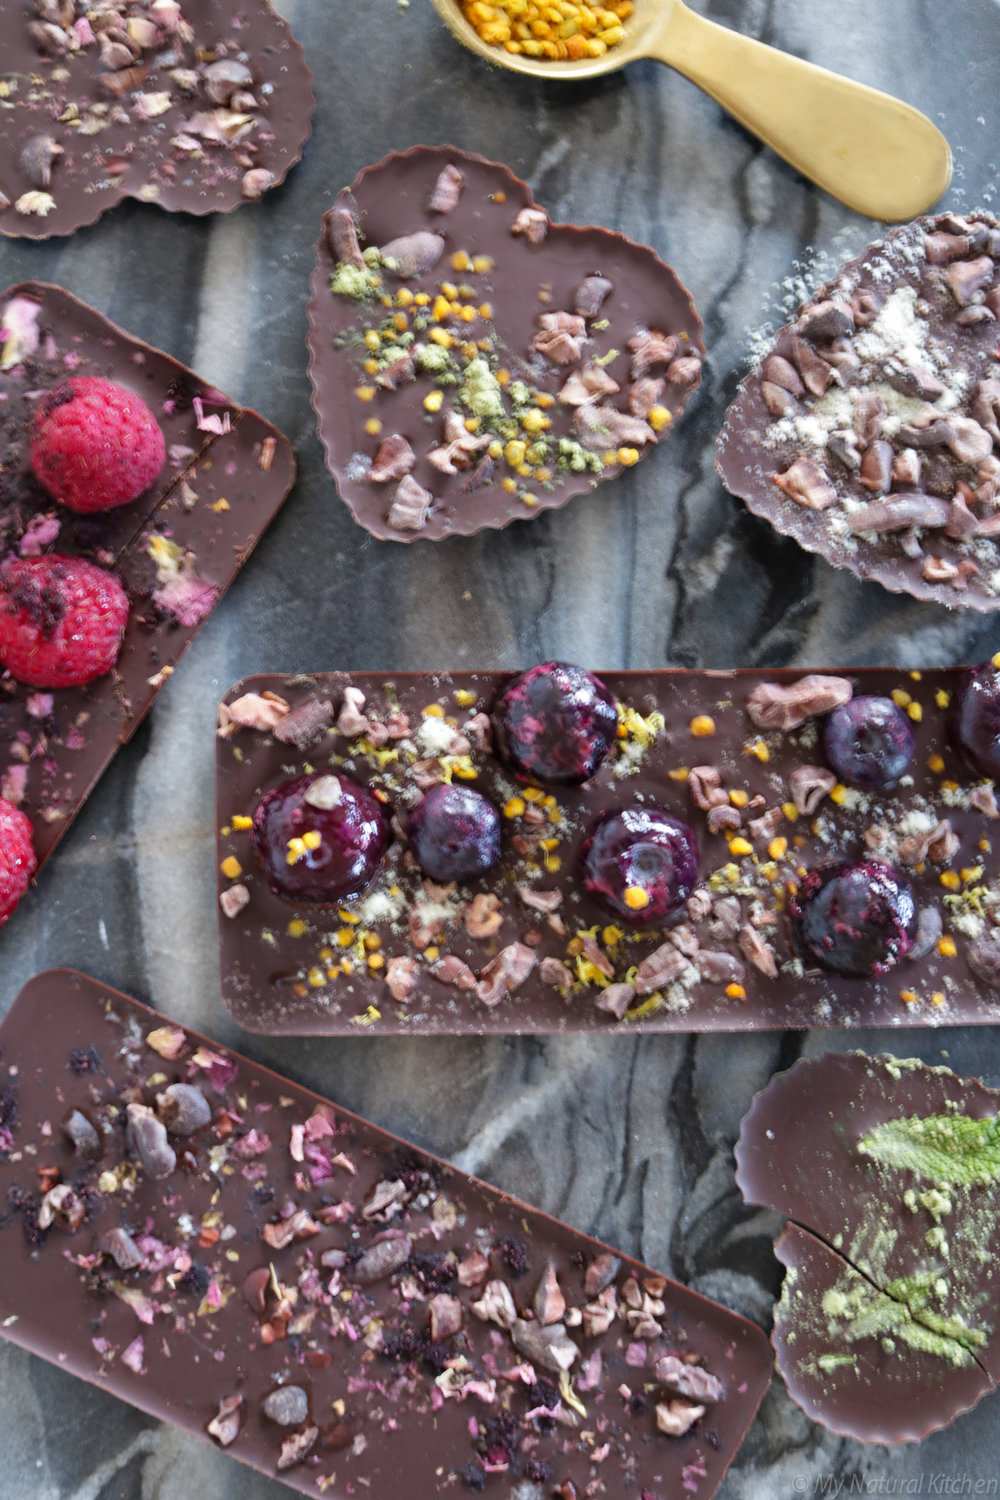 adaptogenic chocolate and fruit bars #glutenfree #vegan #sugarfree by my natural kitchen